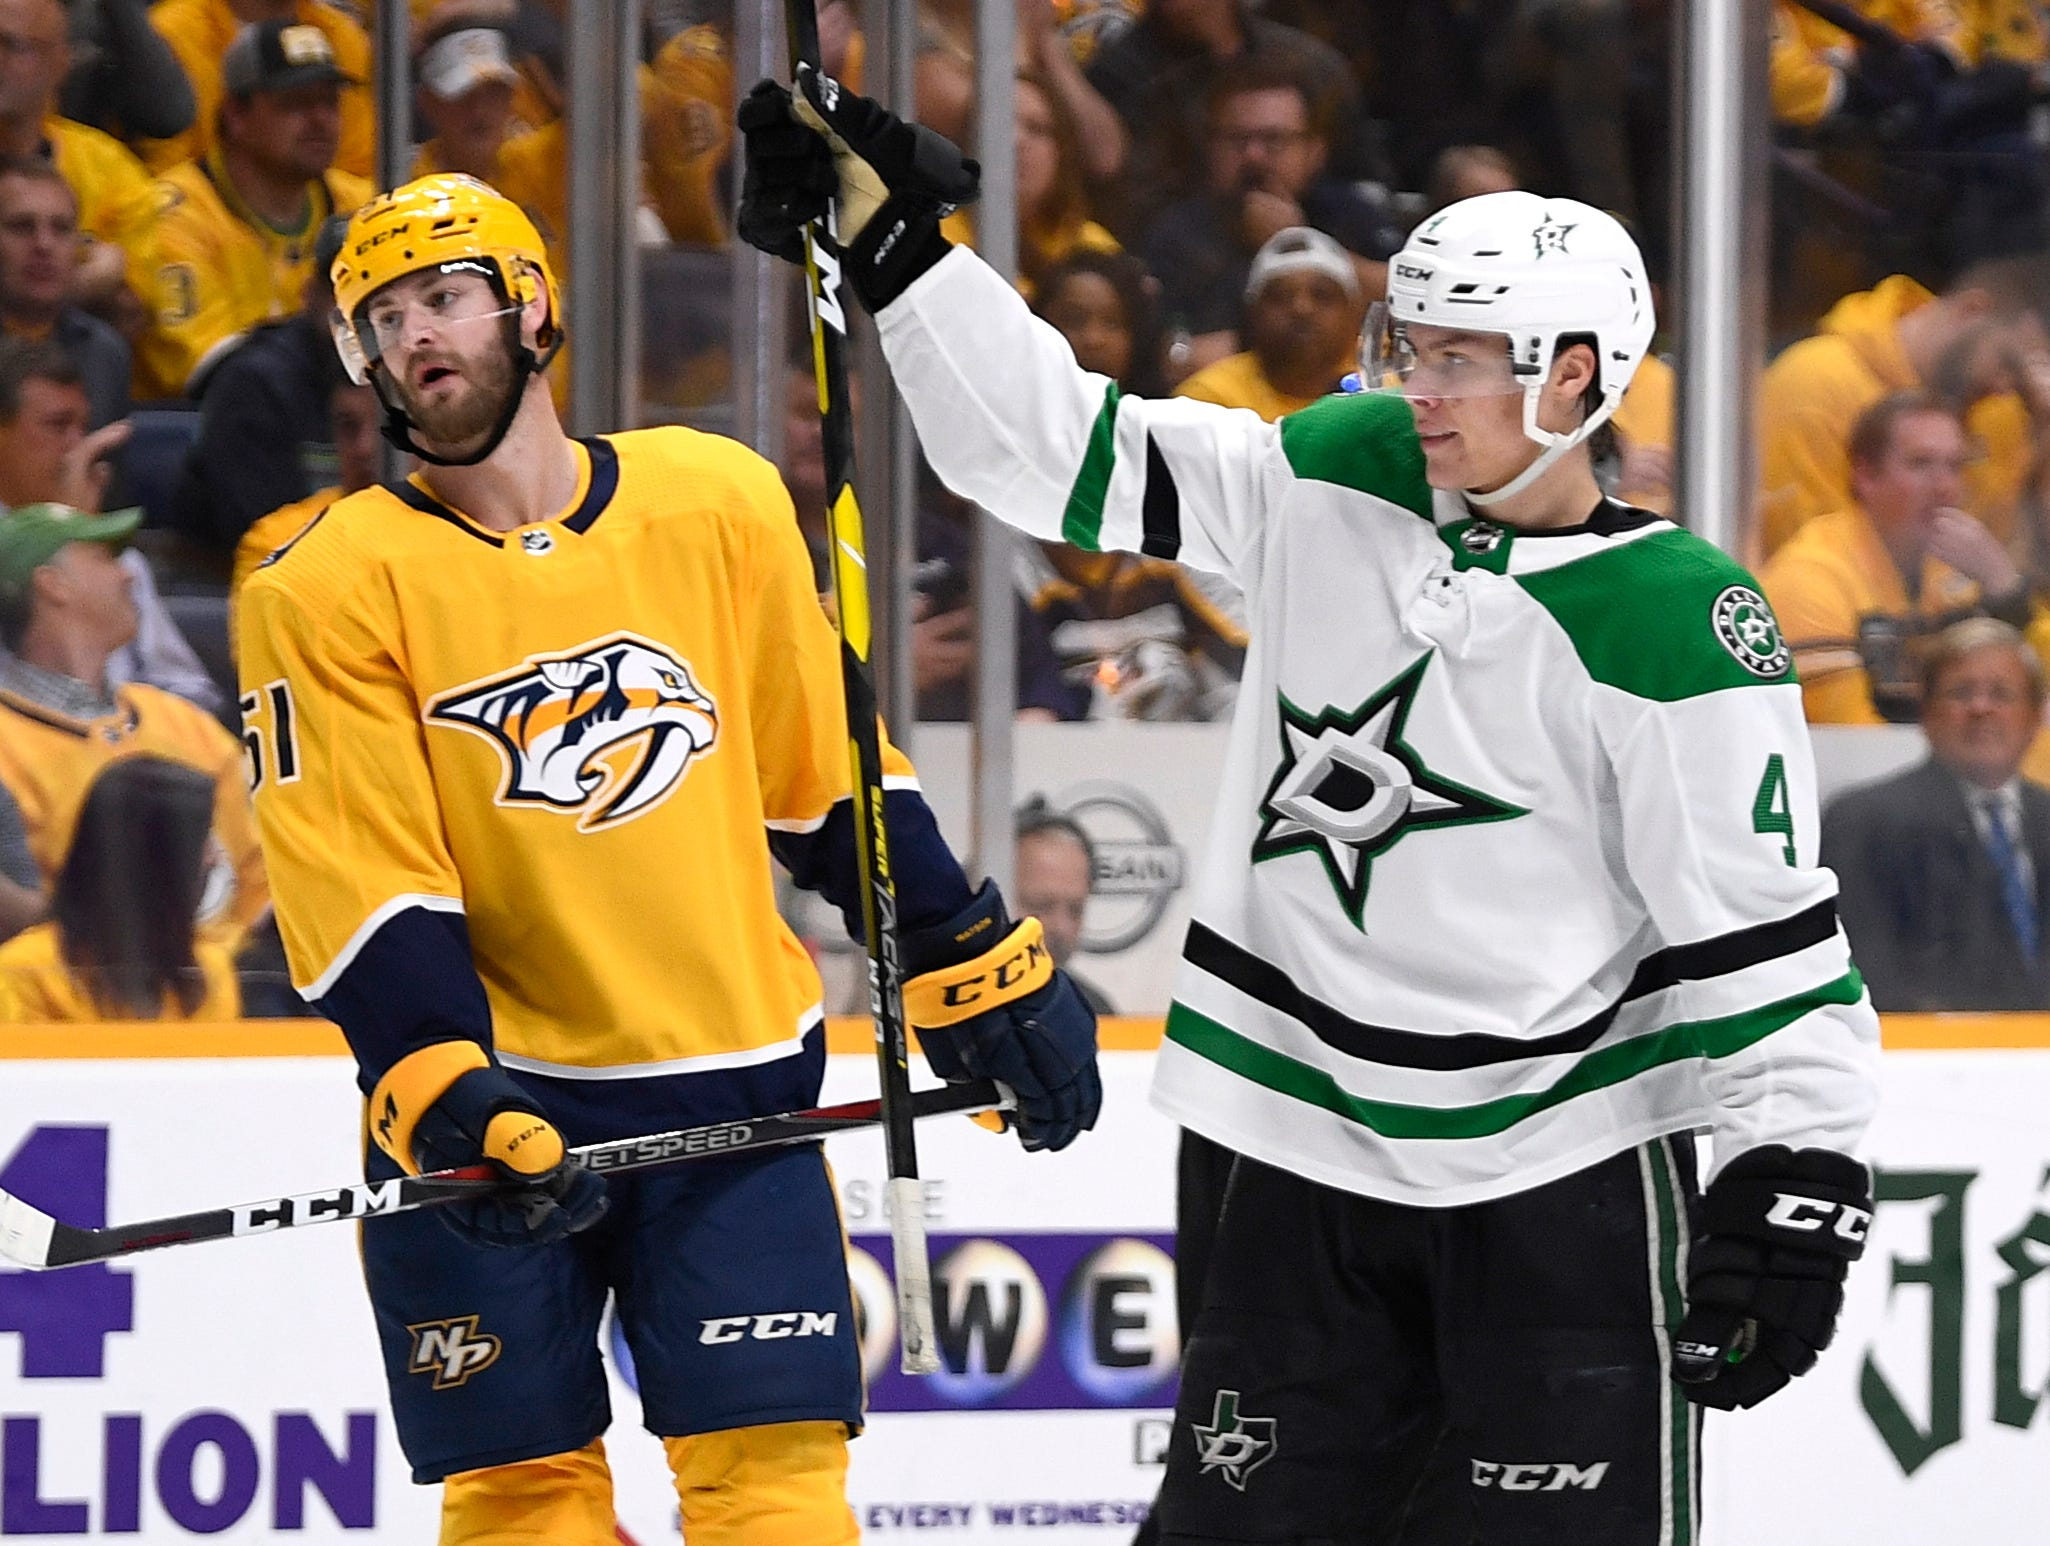 Dallas Stars defenseman Miro Heiskanen (4) celebrates his goal as Nashville Predators left wing Austin Watson (51) reacts during the second period of the divisional semifinal game at Bridgestone Arena in Nashville, Tenn., Wednesday, April 10, 2019.